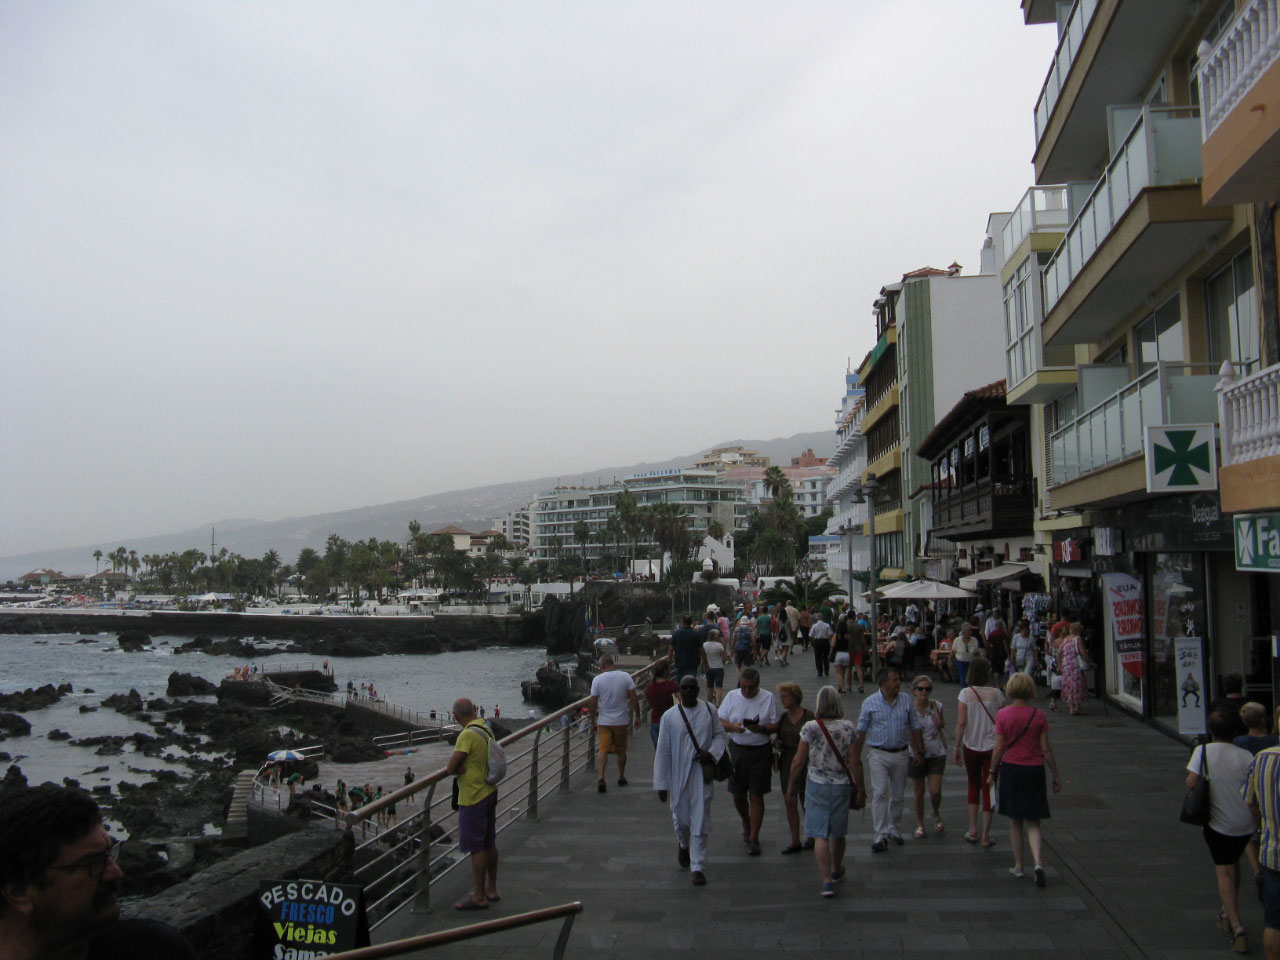 Puerto la Cruz, not a charming place